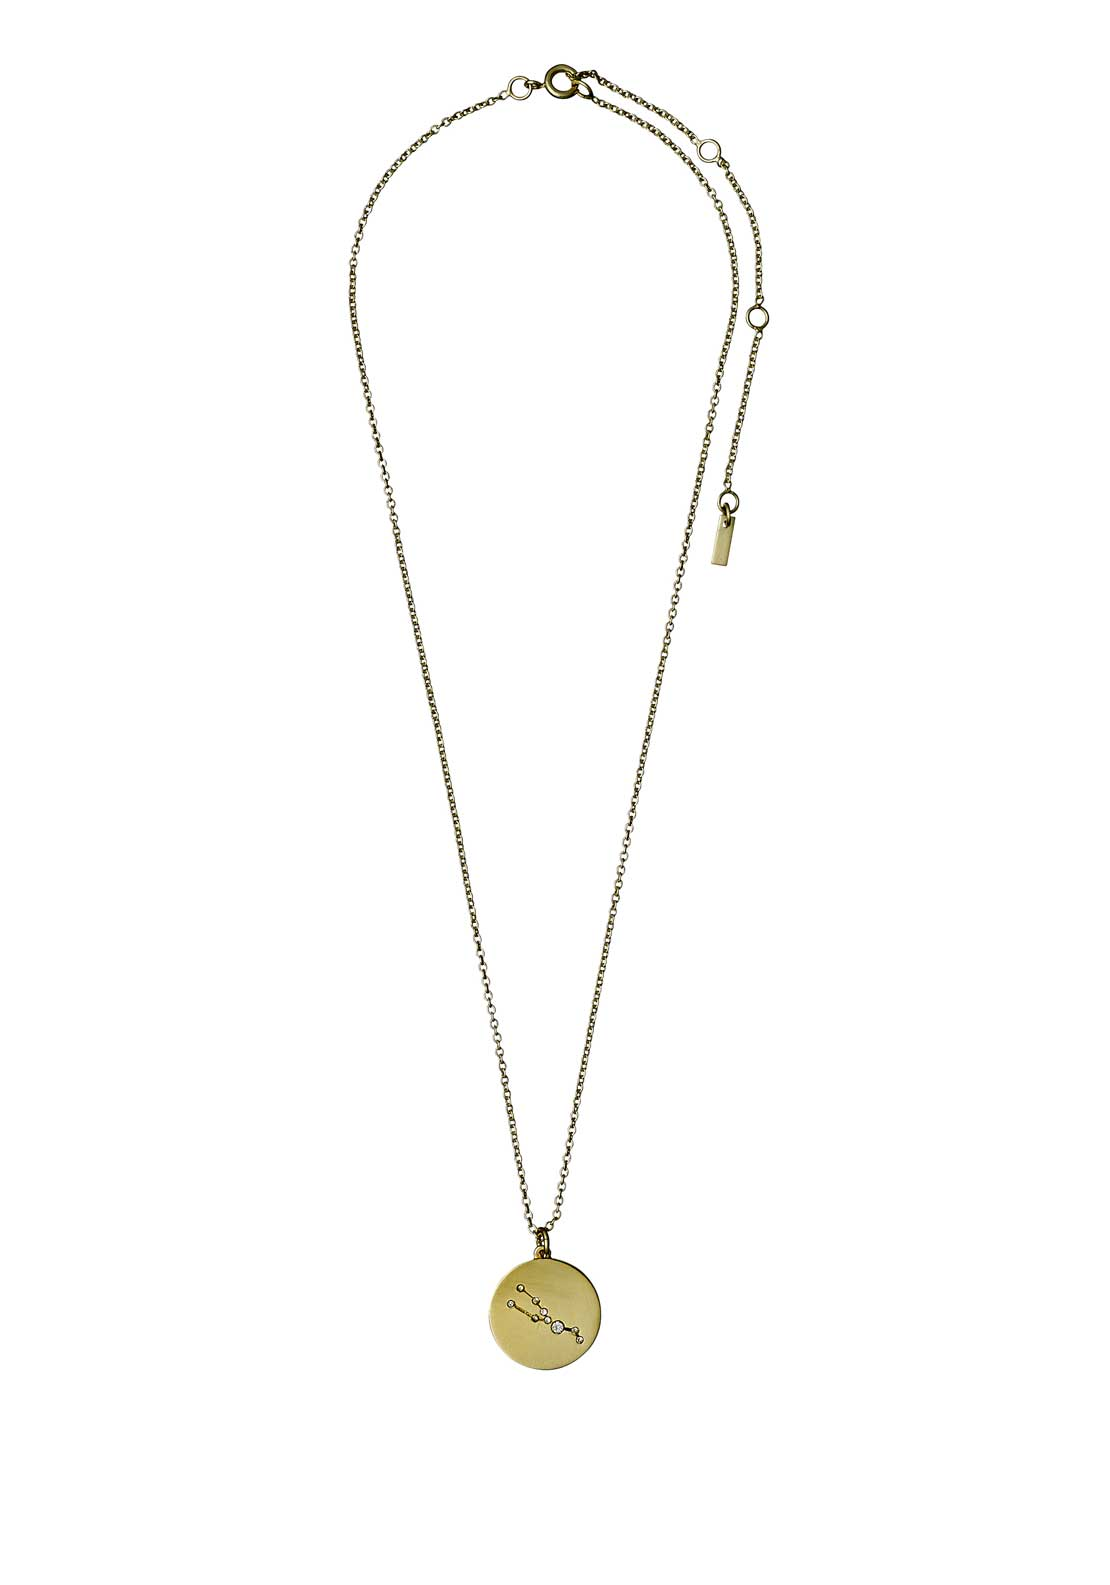 Pilgrim Taurus Zodiac Sign Necklace, Gold